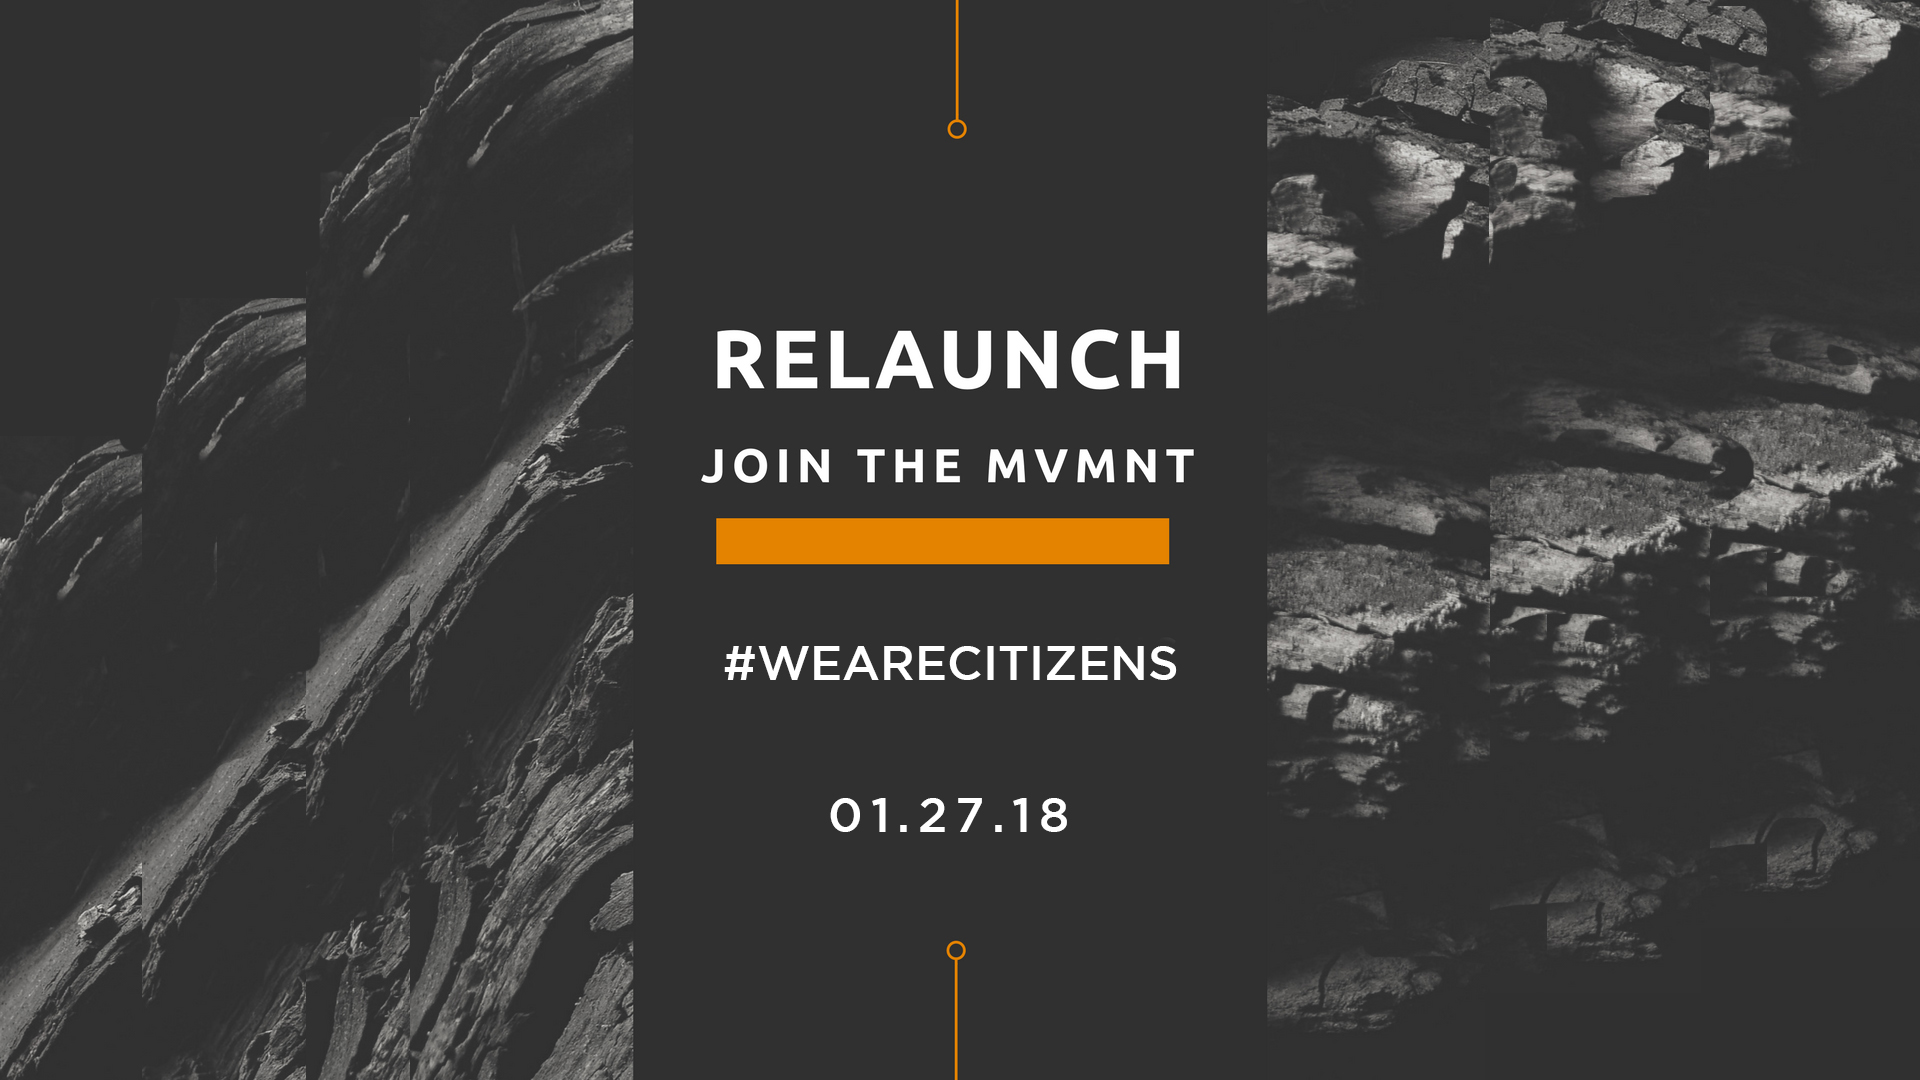 EVENT: Relaunch 2018